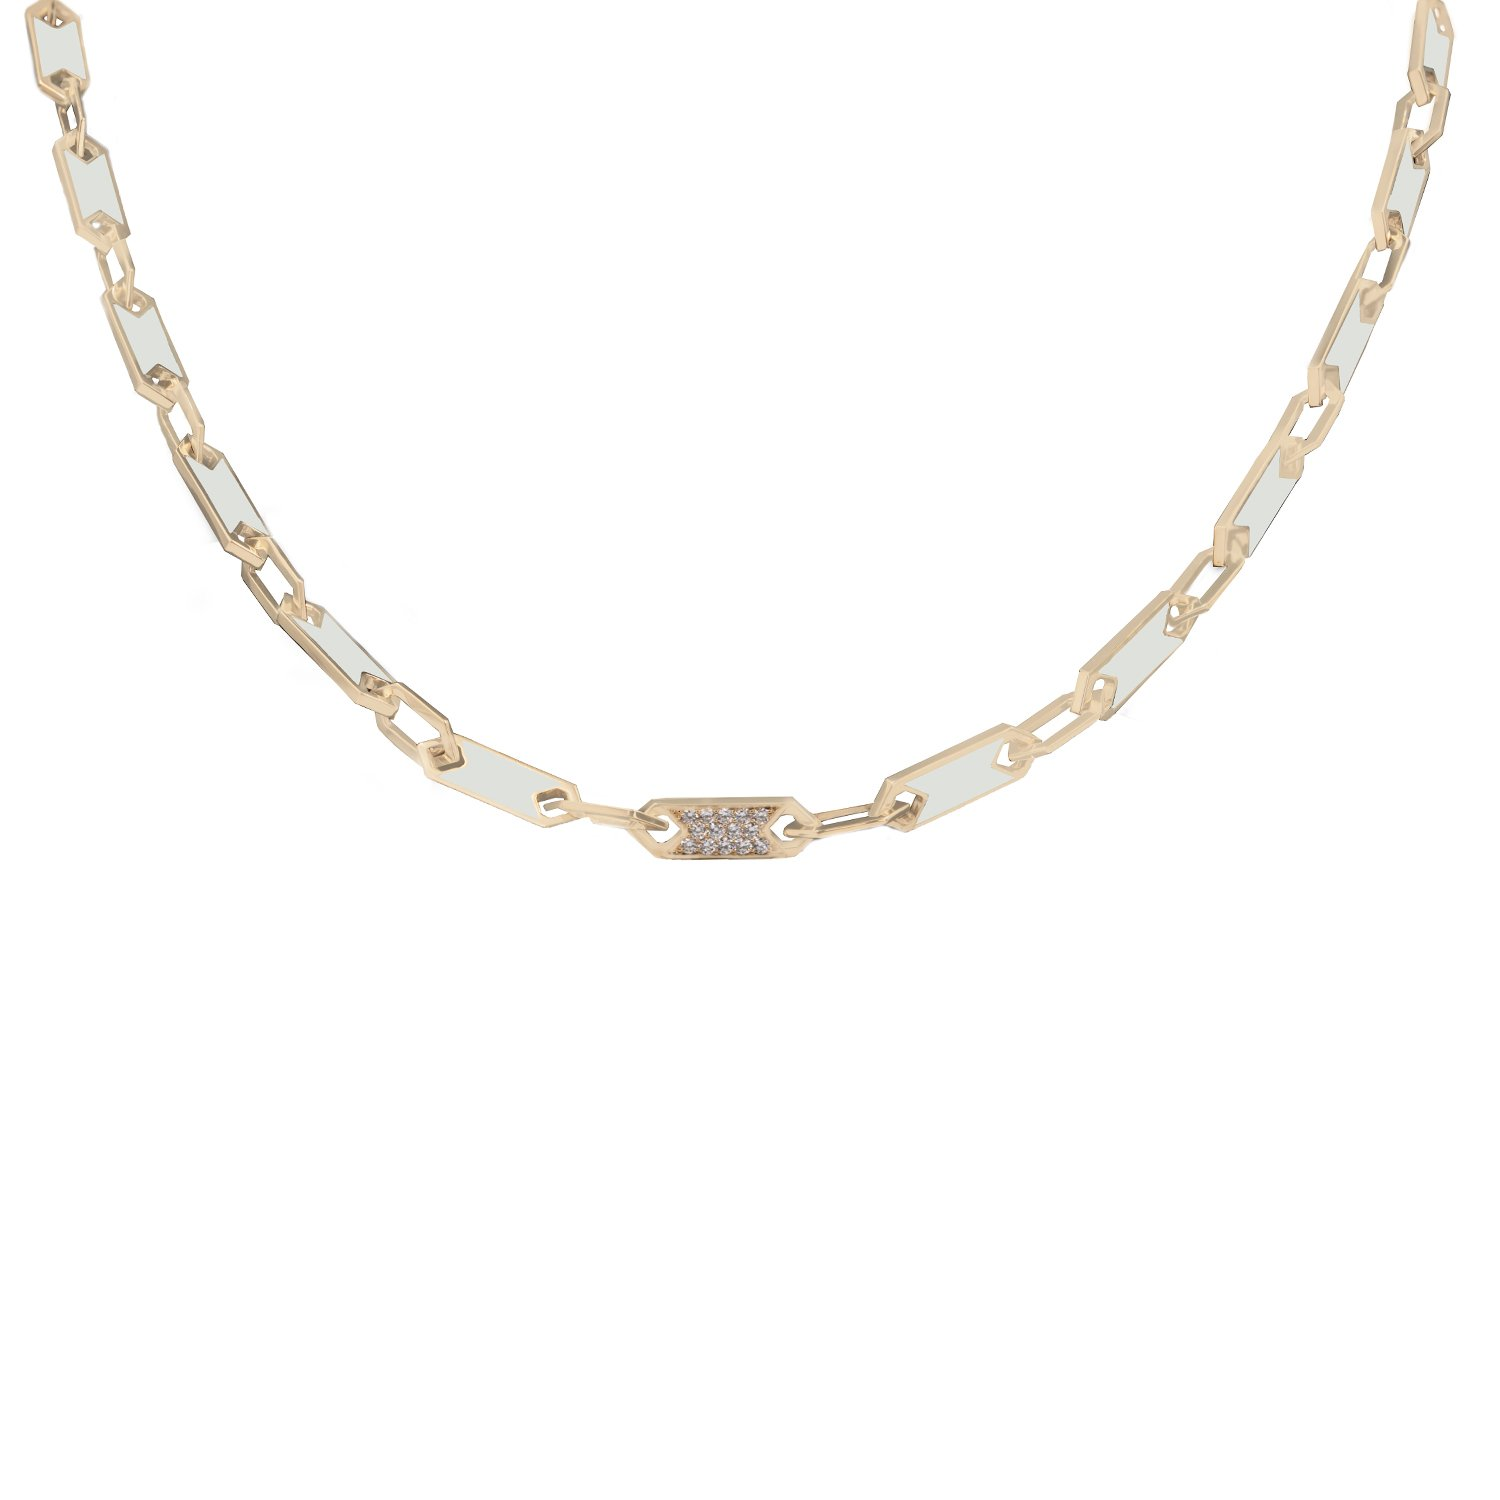 ROSE NECKLACE IN MOTHER OF PEARL